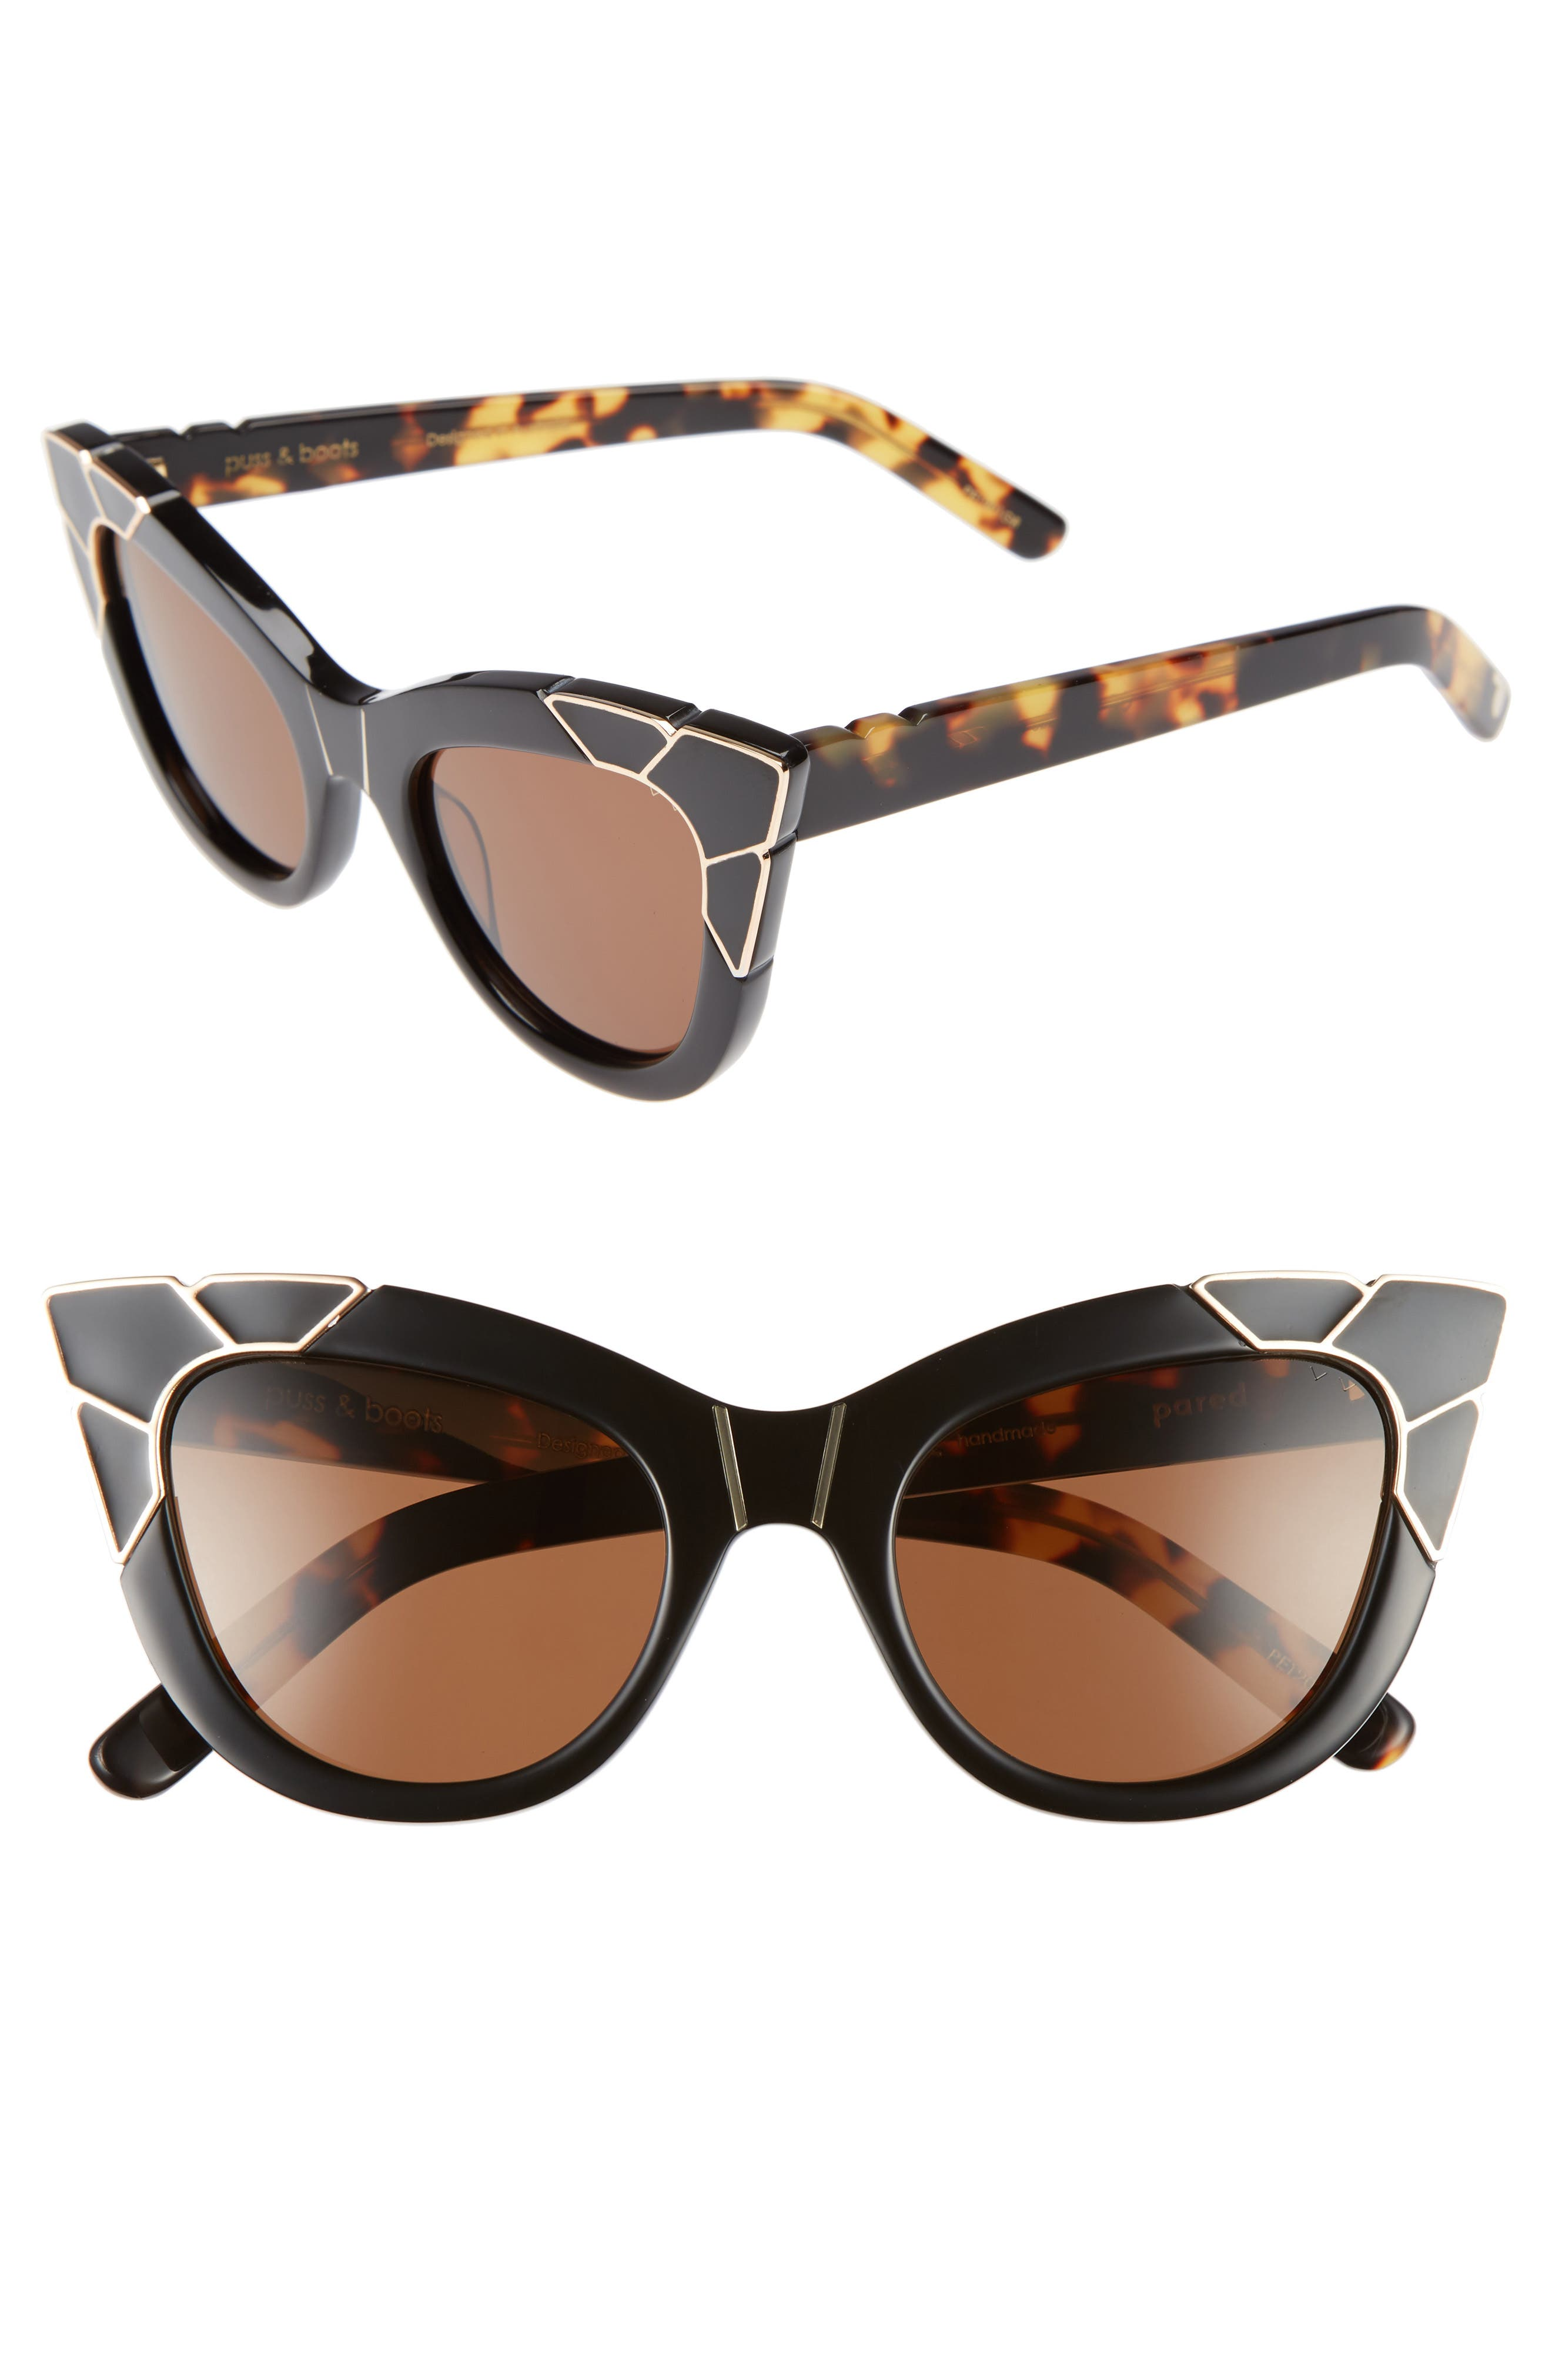 Main Image - Pared Puss & Boots 49mm Cat Eye Sunglasses